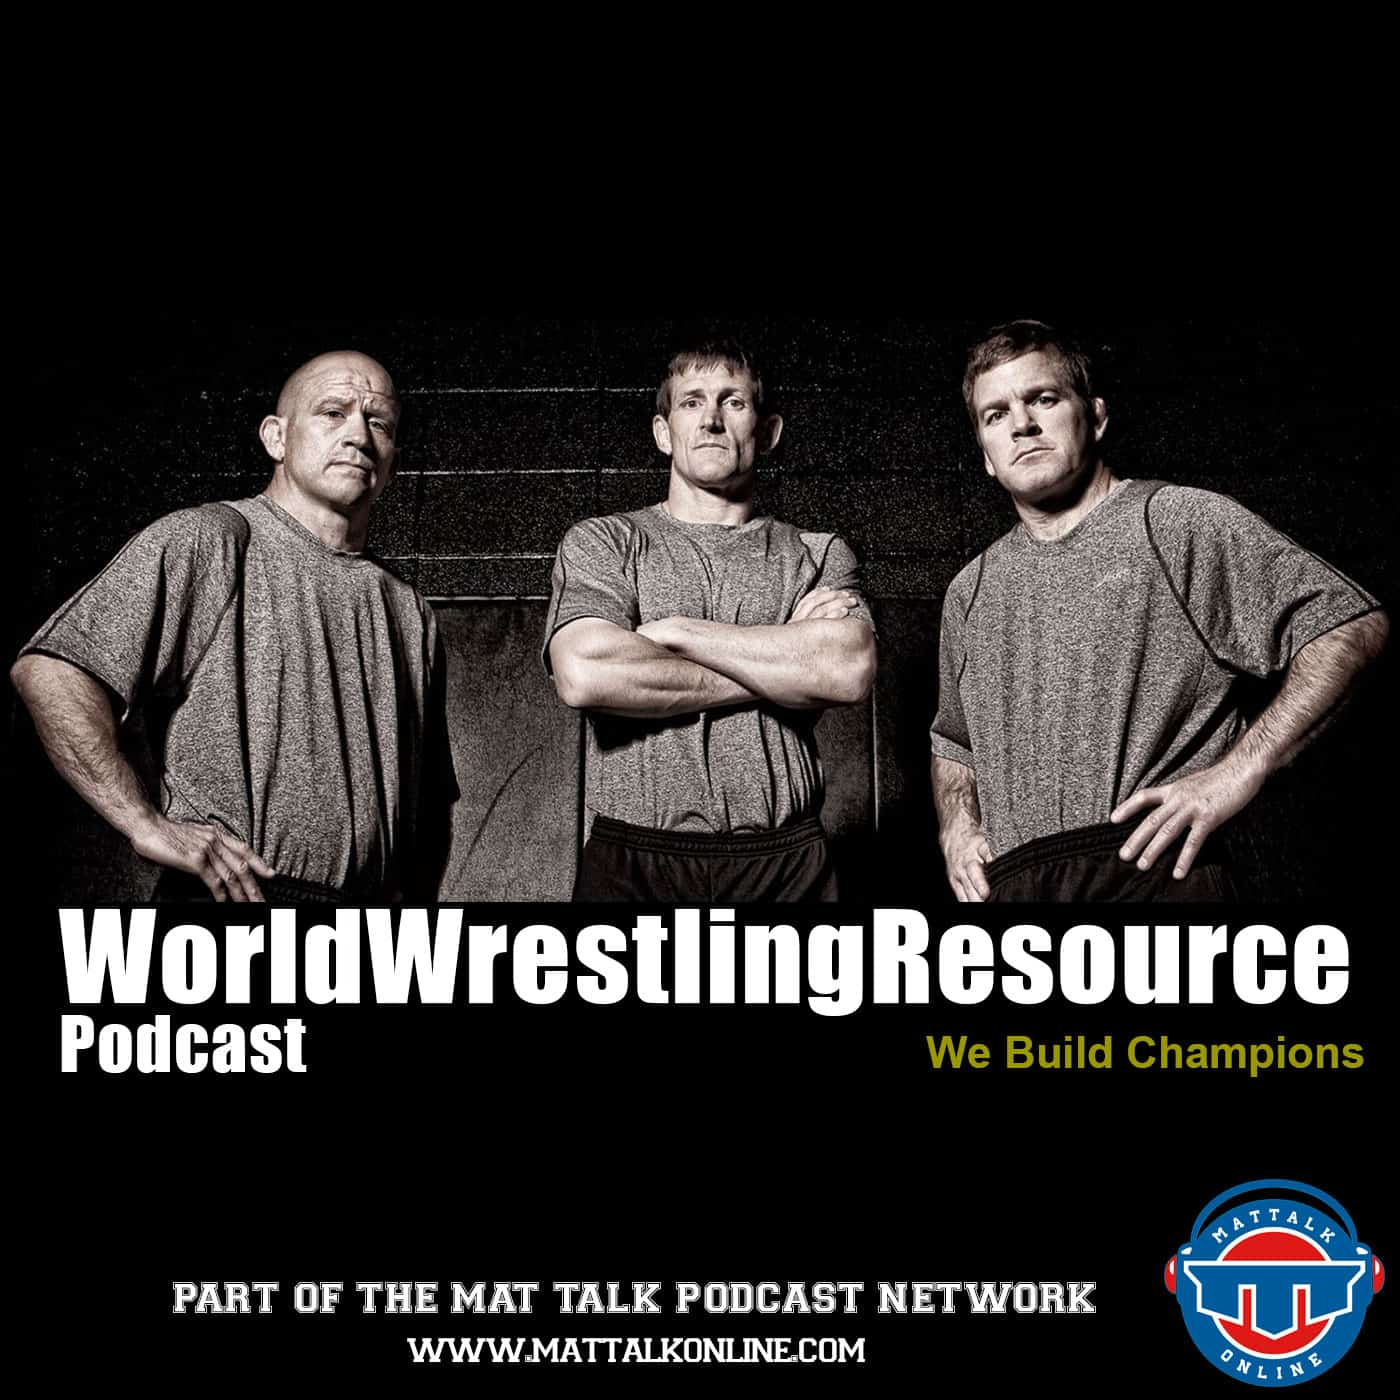 Starting to populate the network with World Wrestling Resource